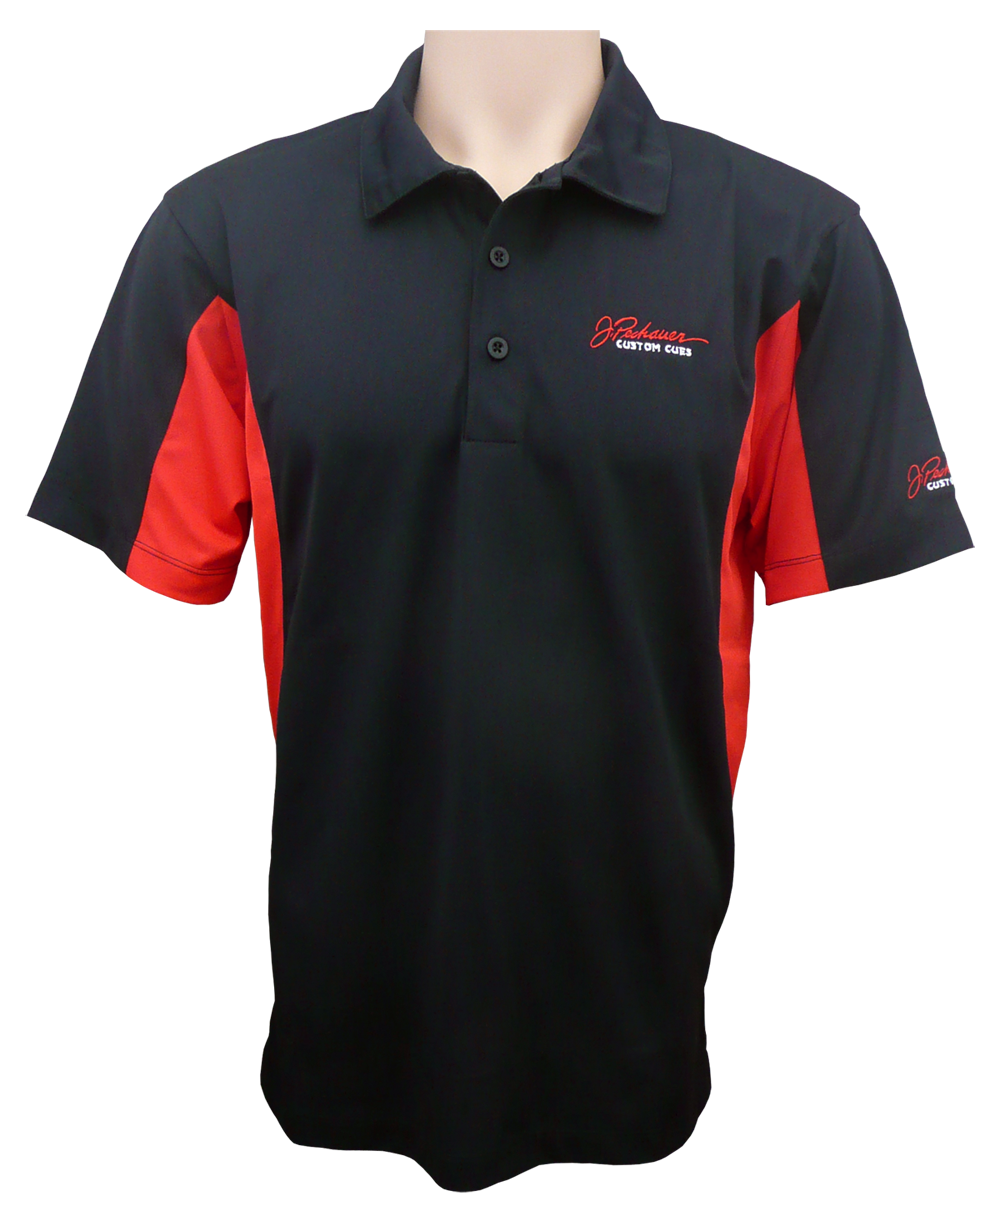 Red Black Sportek Polo Shirt Pechauer Custom Cues Wholesale & supply store performance fabric for performing people. red black sportek polo shirt